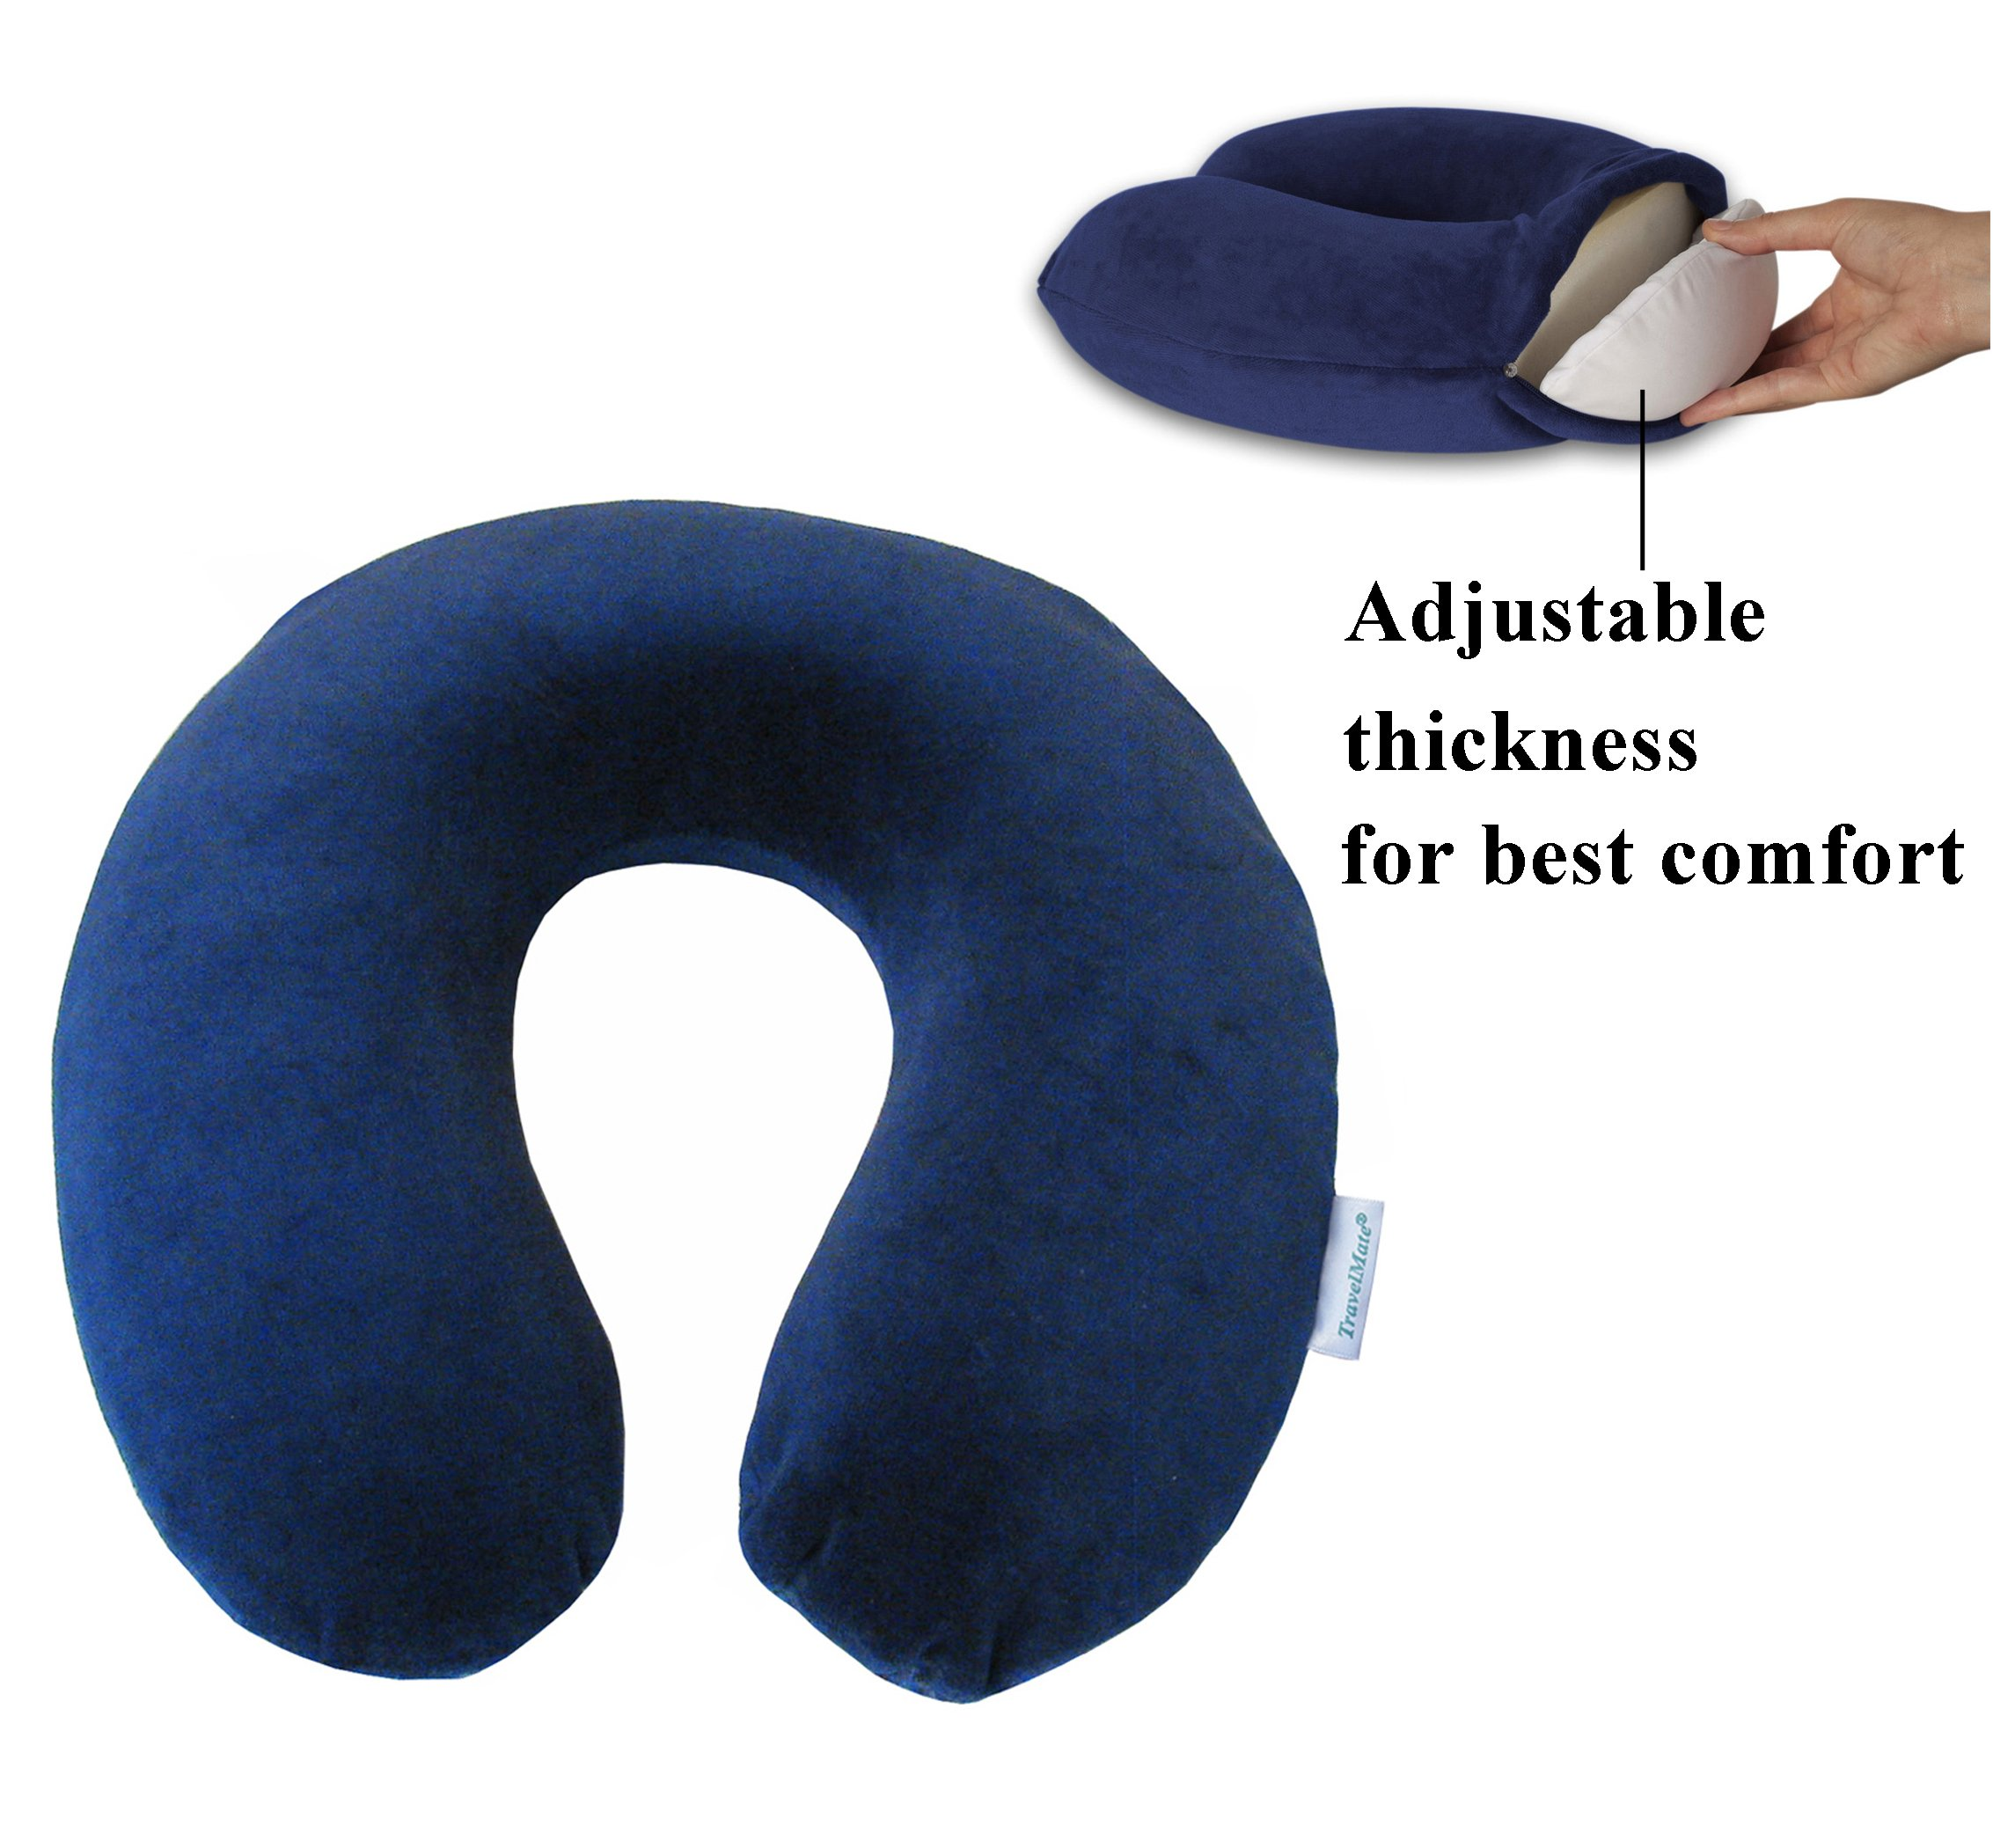 of a florida pillows alternative is sleeping back arthritis center filled neck pillow fiber for j there andamp side relief the solution pain dr used can and in this medicine divet cervical down sleep traction naturally be